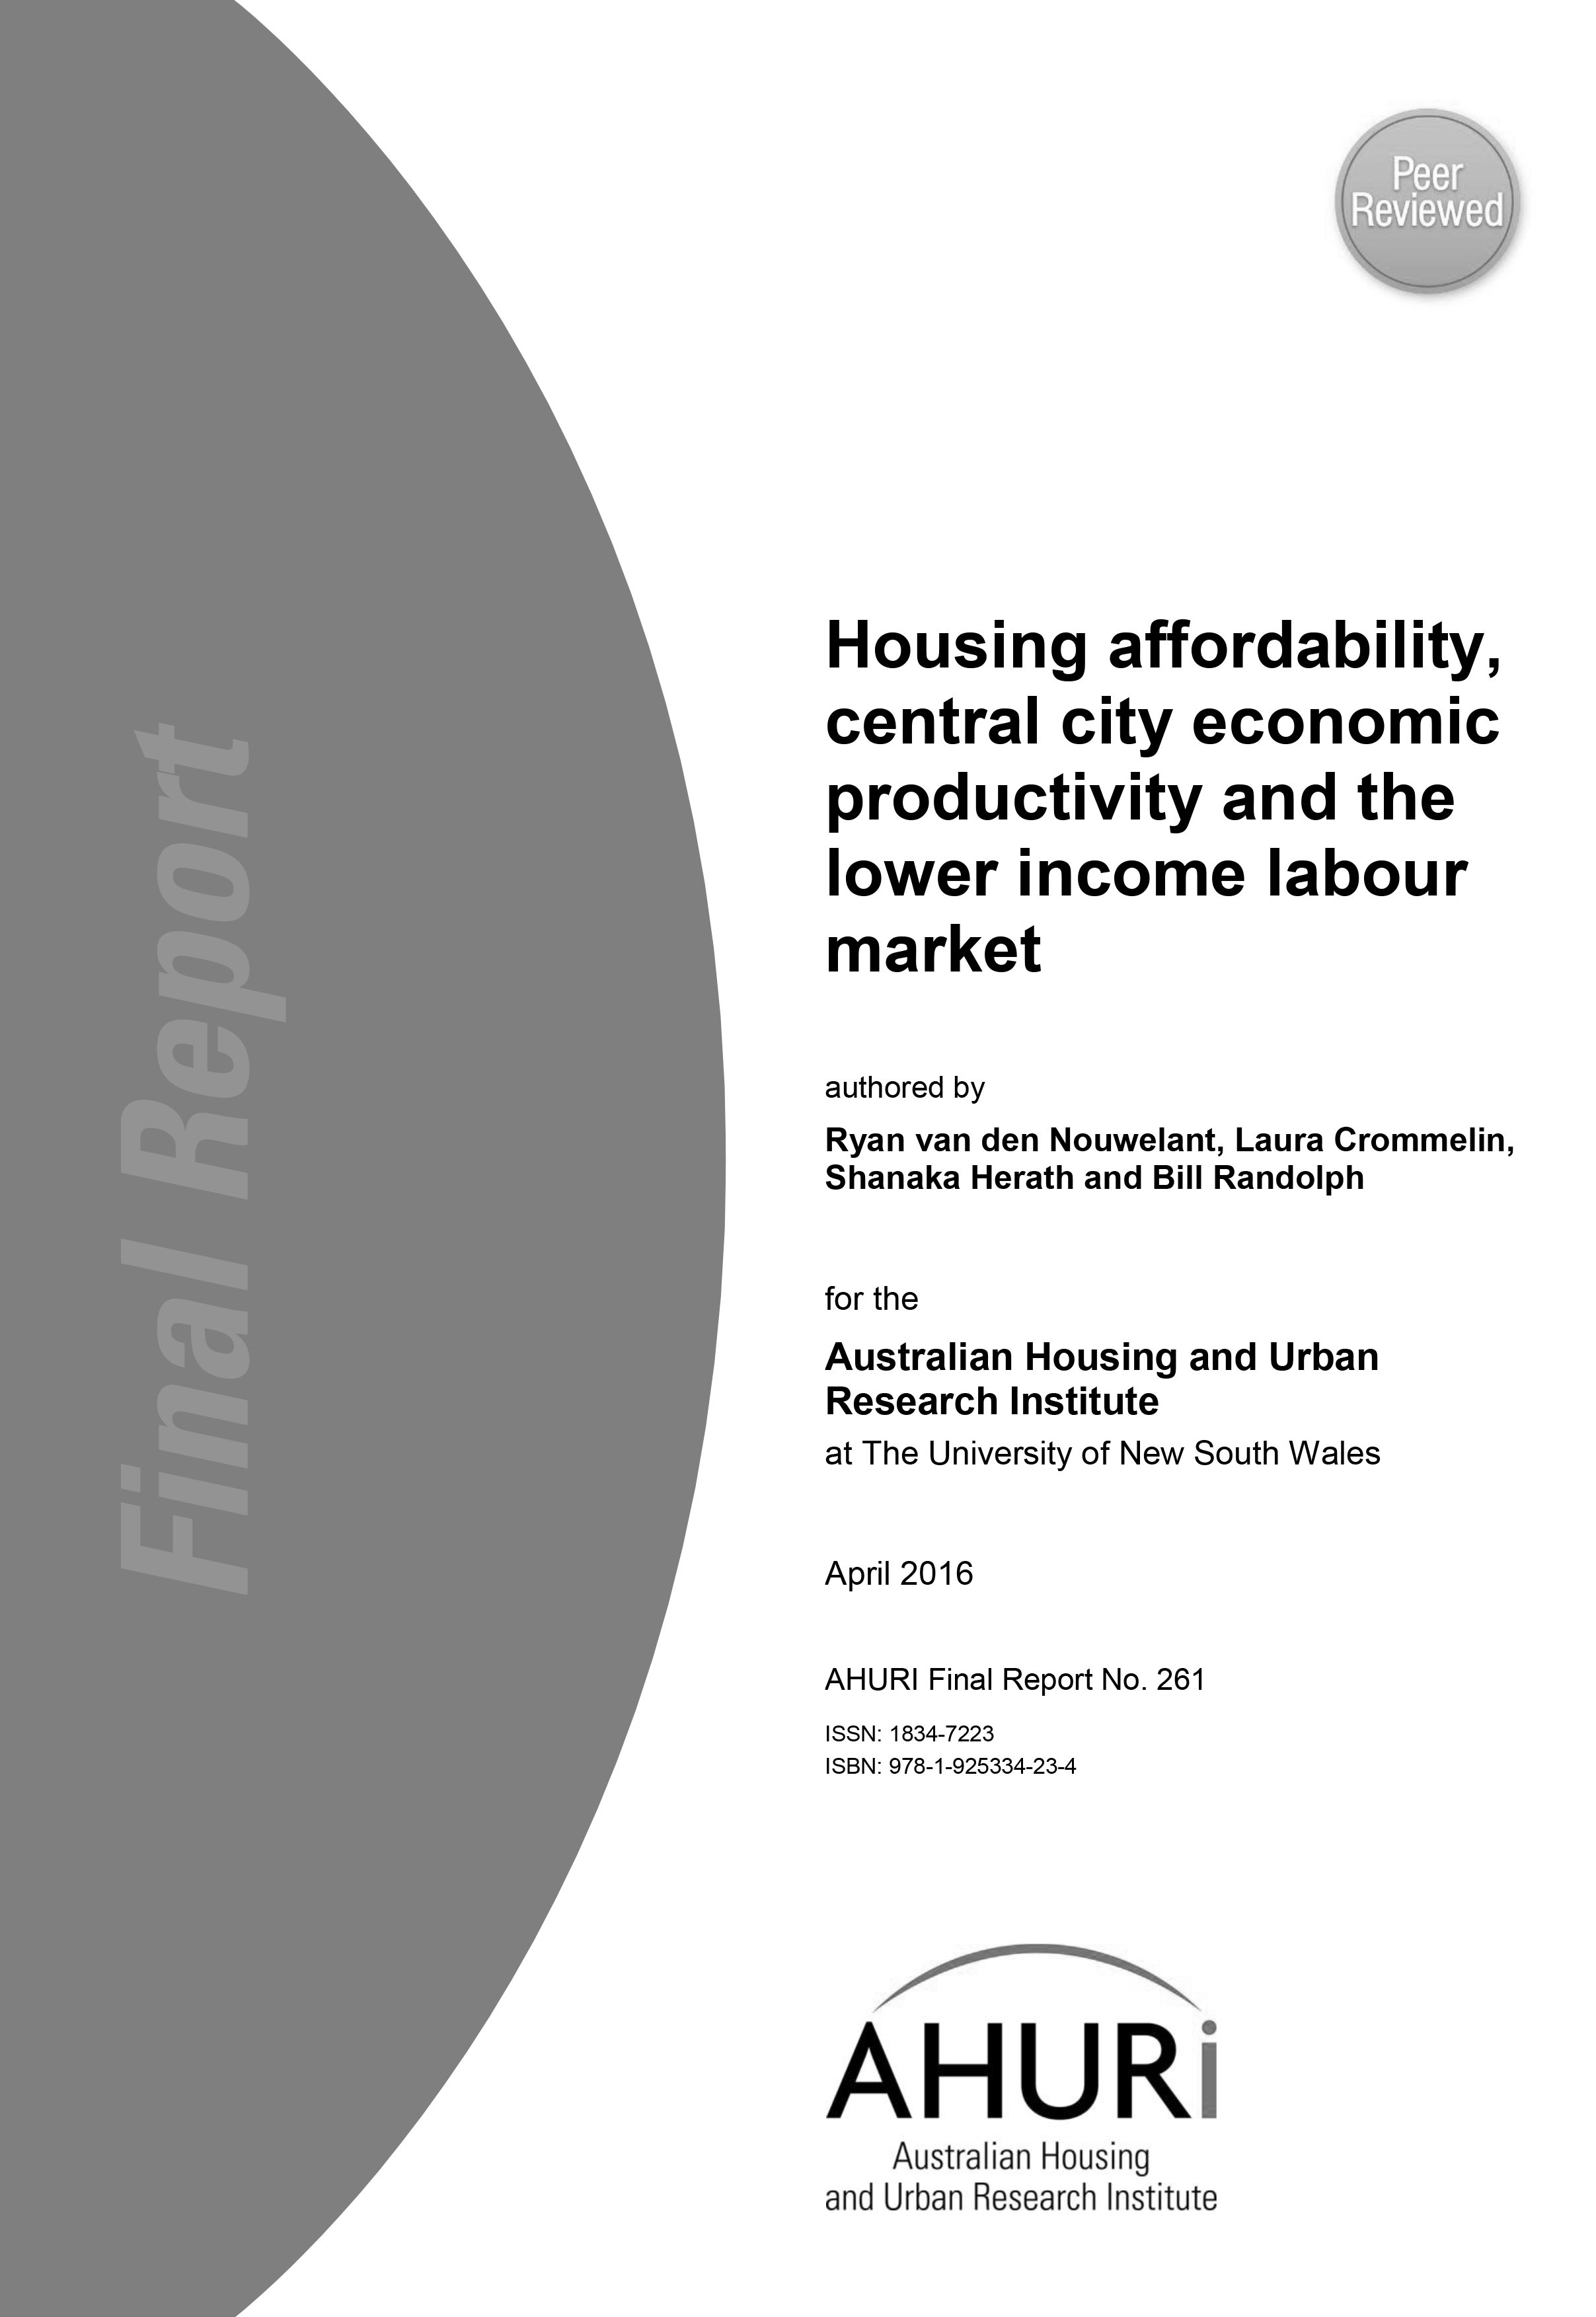 Final Report - Housing affordability, central city economic productivity and the lower income labour market